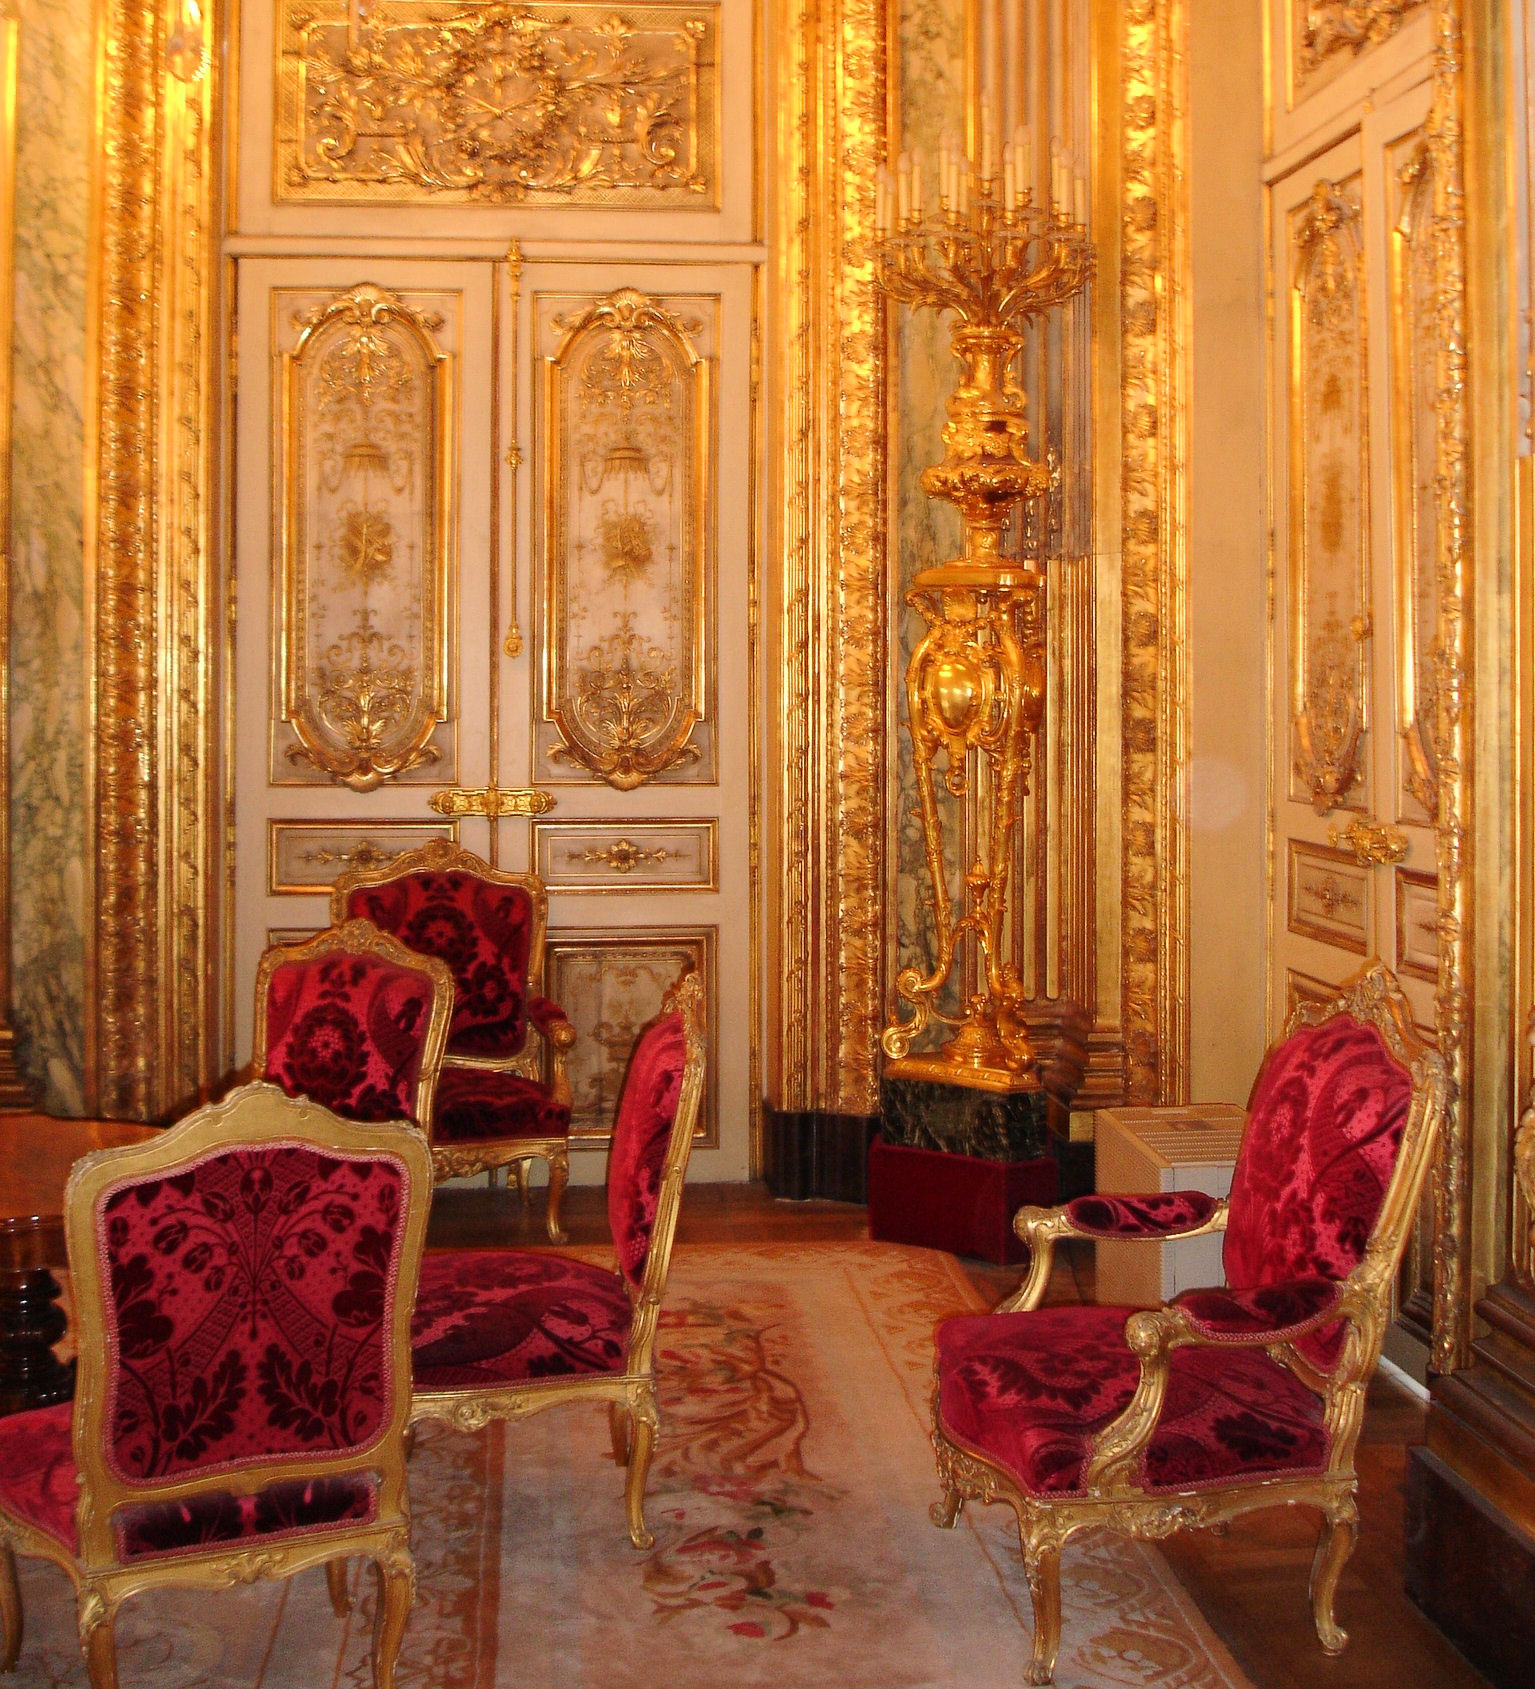 File louvre appartements napoleon iii grand for Salon appartement